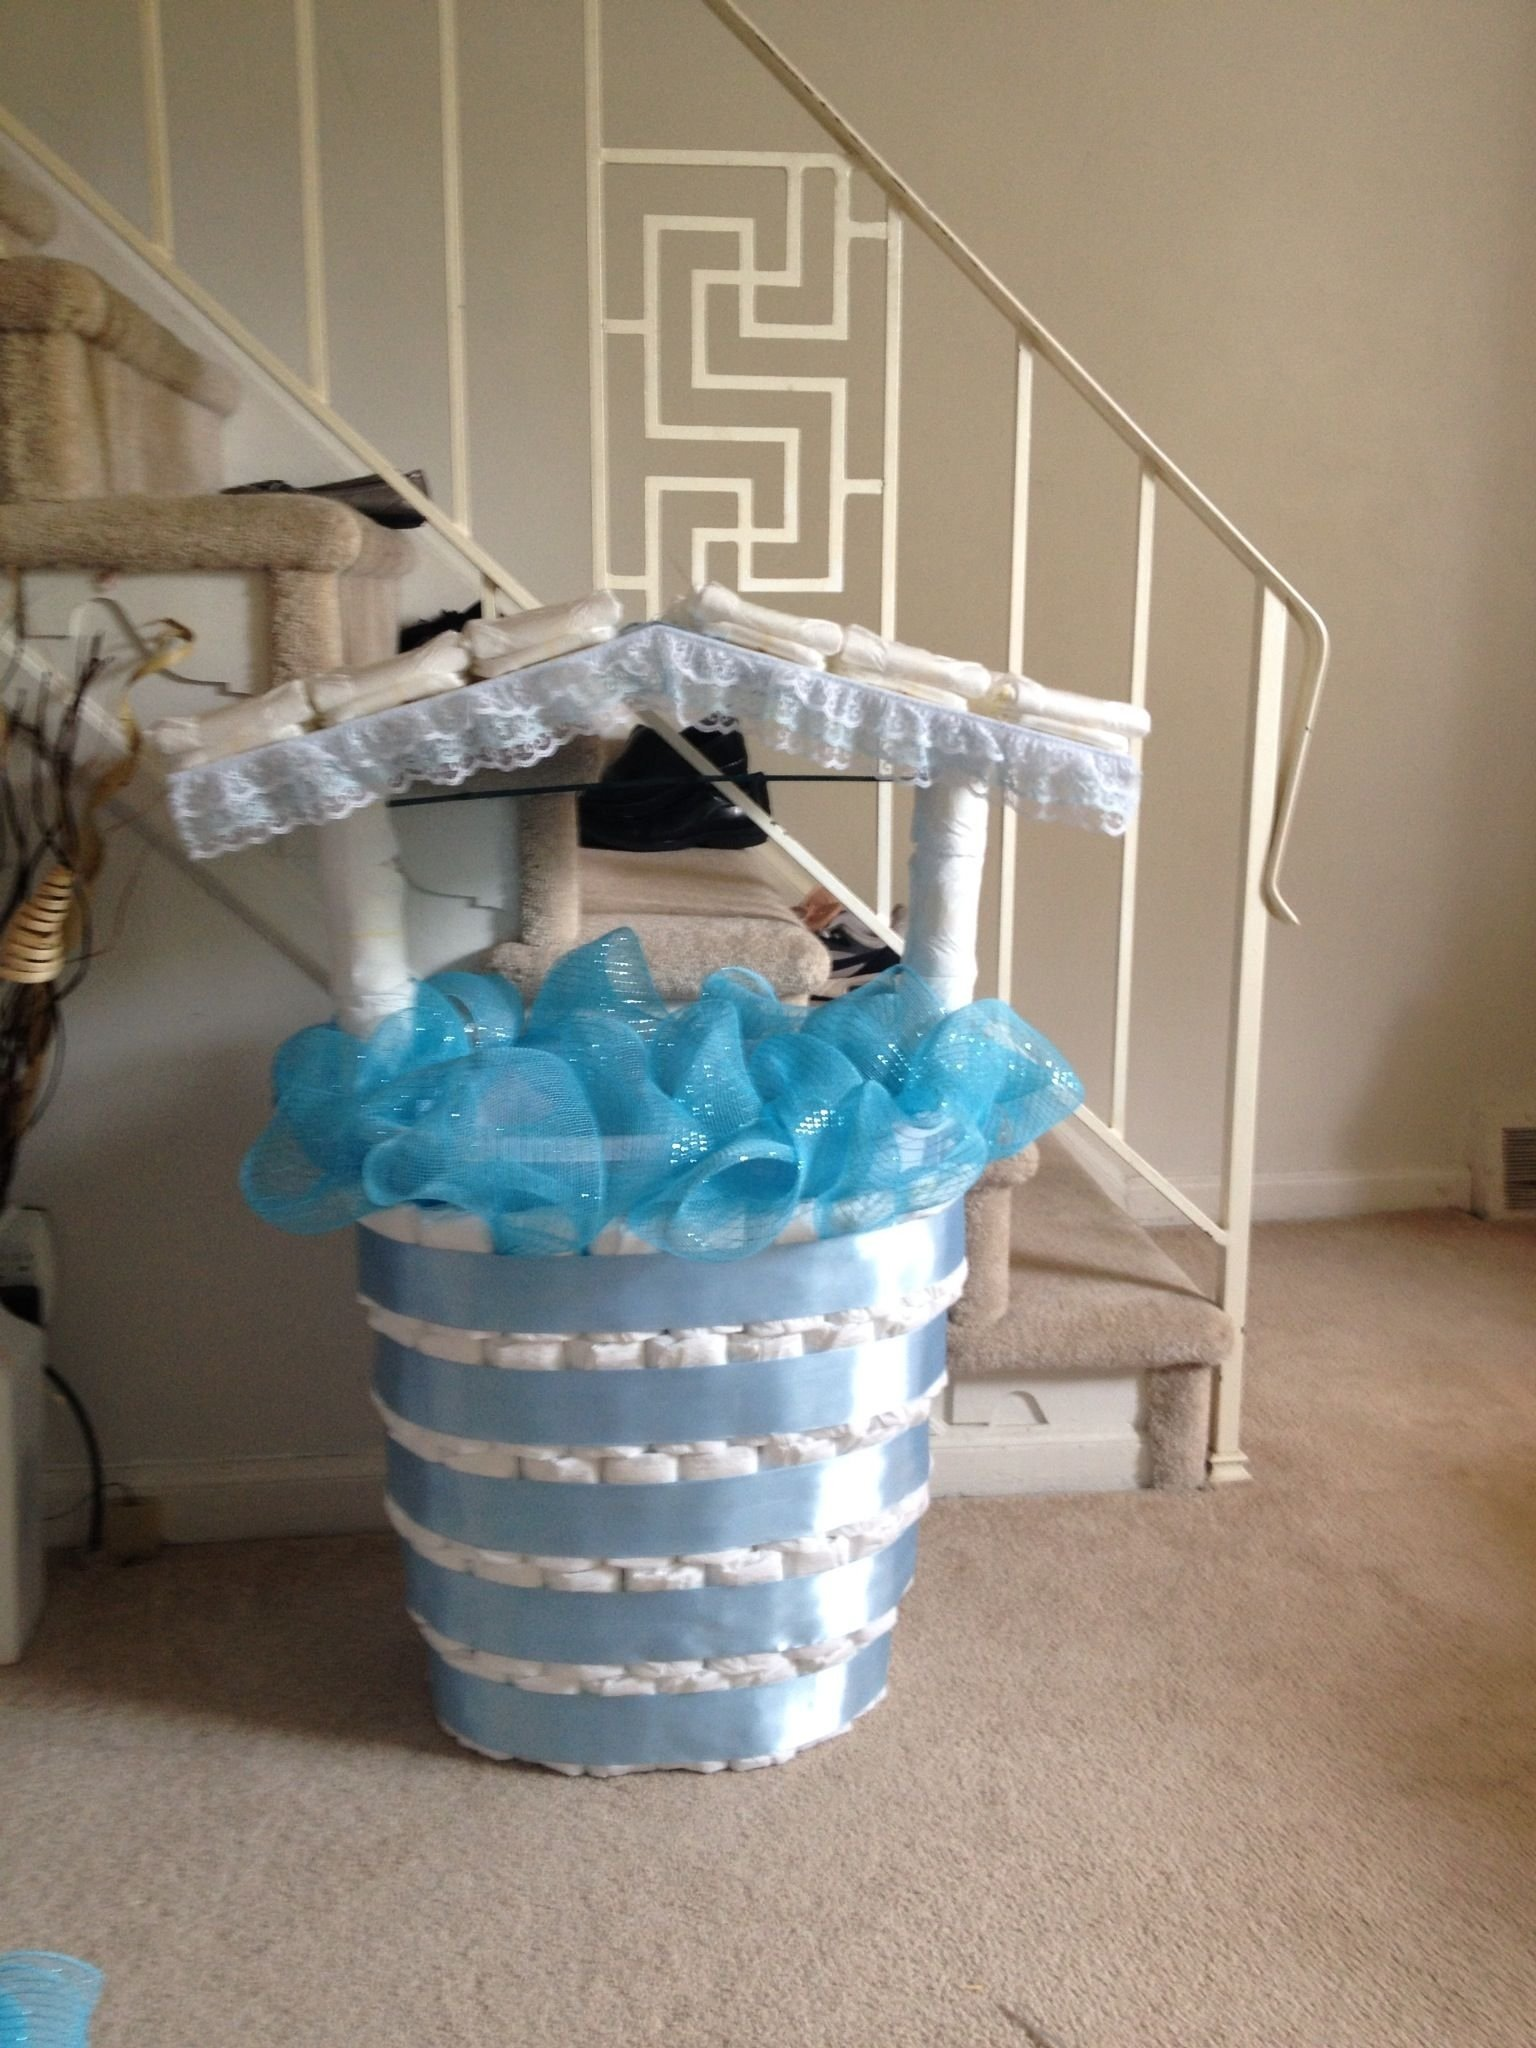 10 Fantastic Baby Shower Wishing Well Ideas baby shower wishing well diy pinterest babies babyshower and 2020